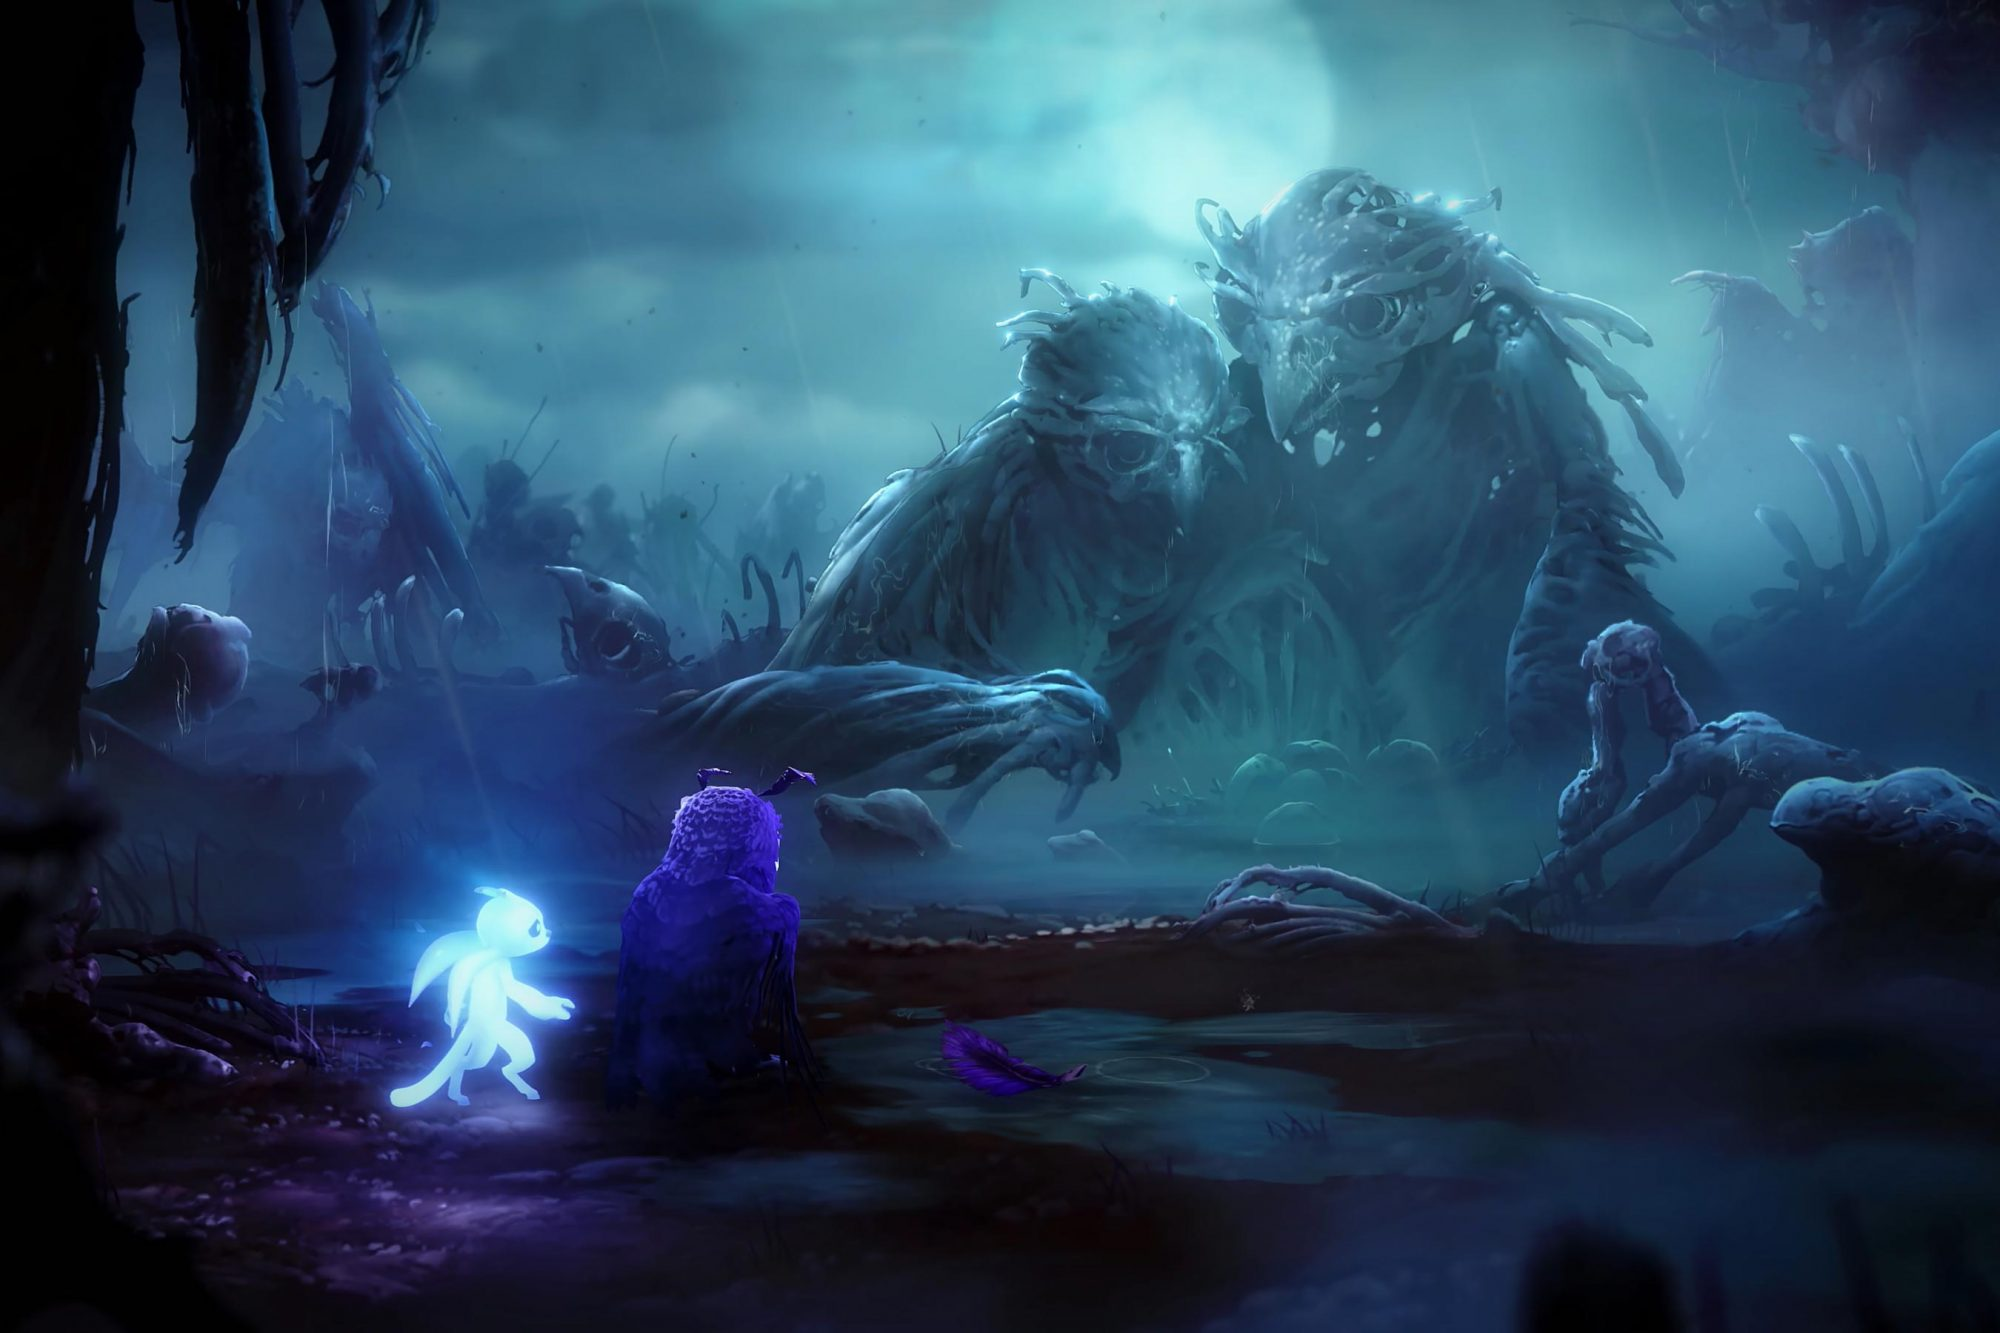 Ori and the Will of the Wisps video game (2018) CR: Microsoft Studios